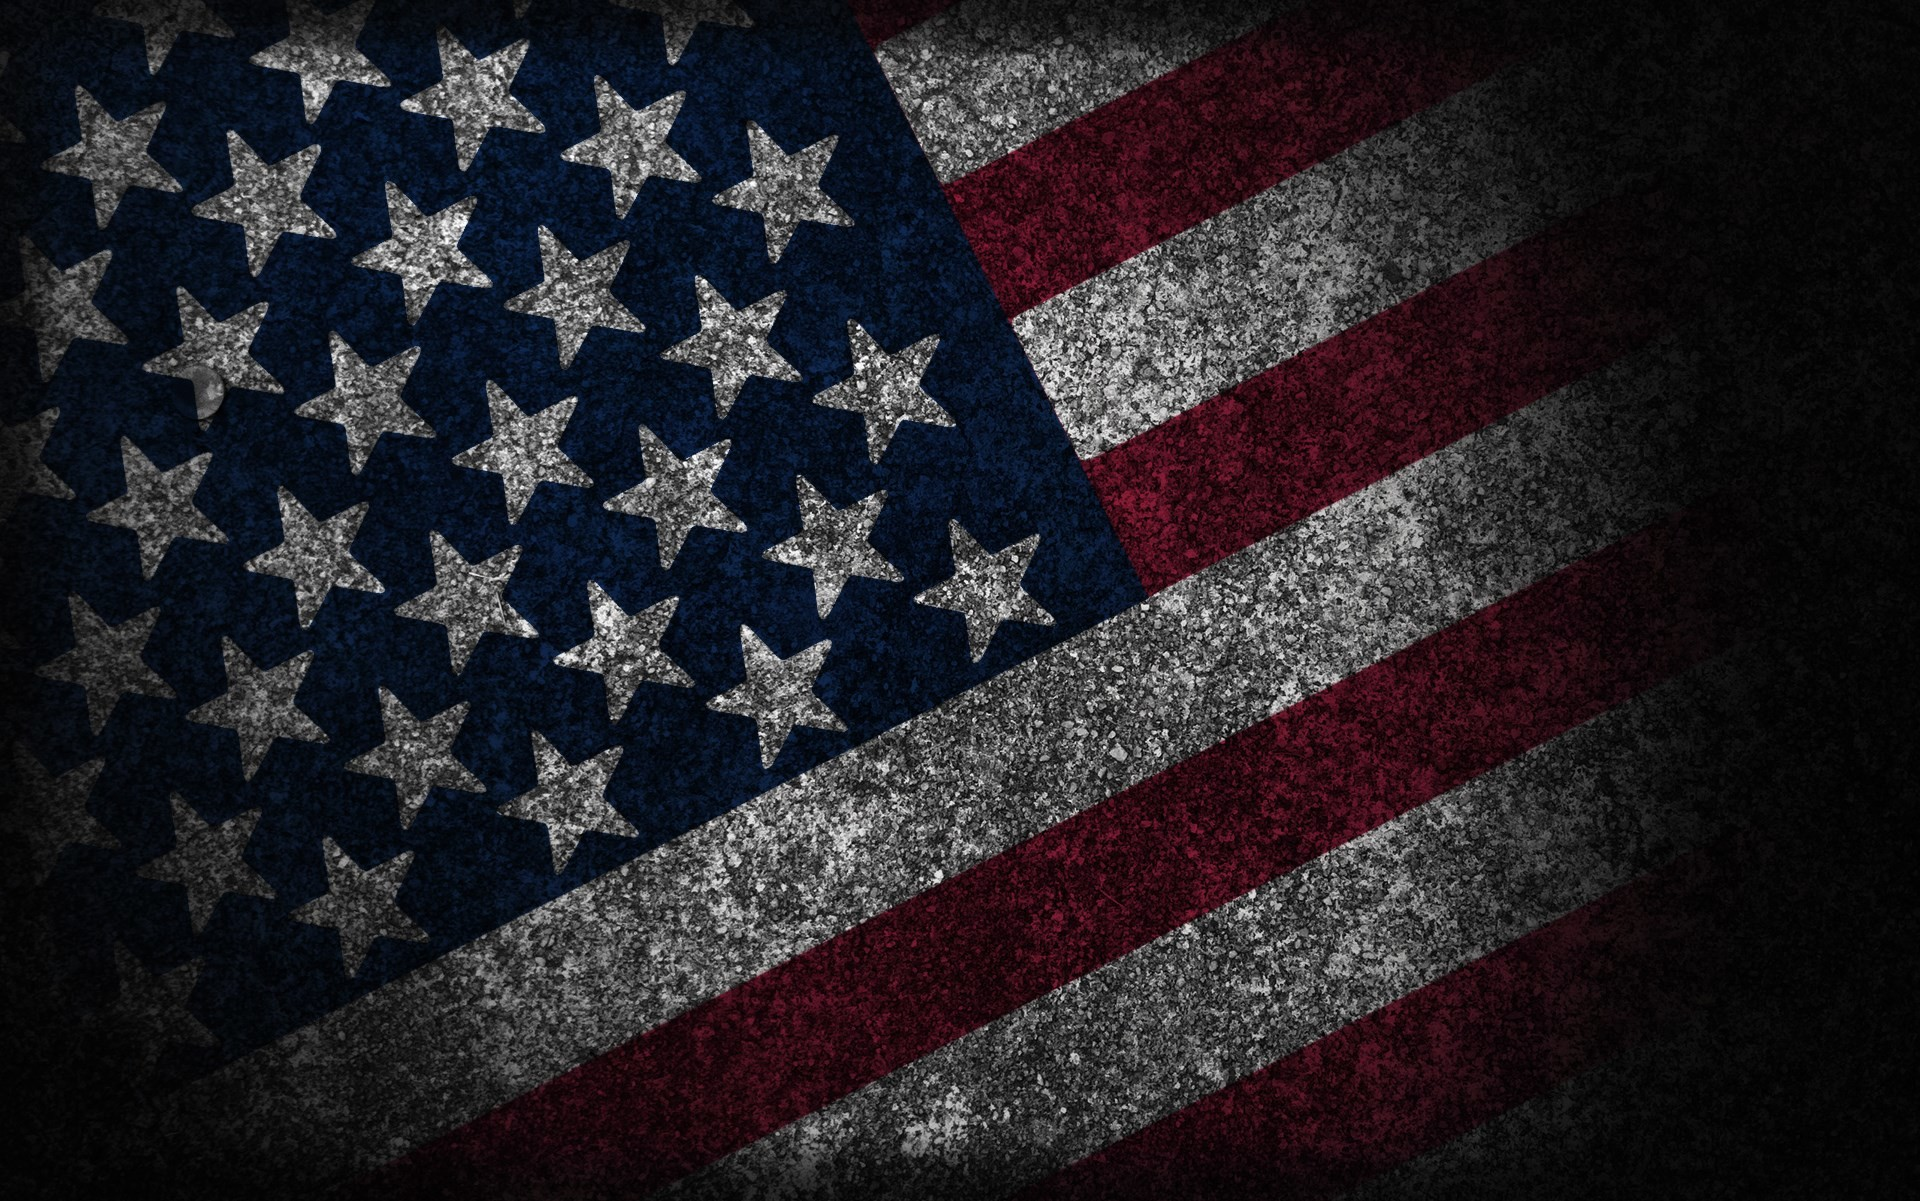 american flag free desktop wallpaper, Newt Kingsman 2016-12-06